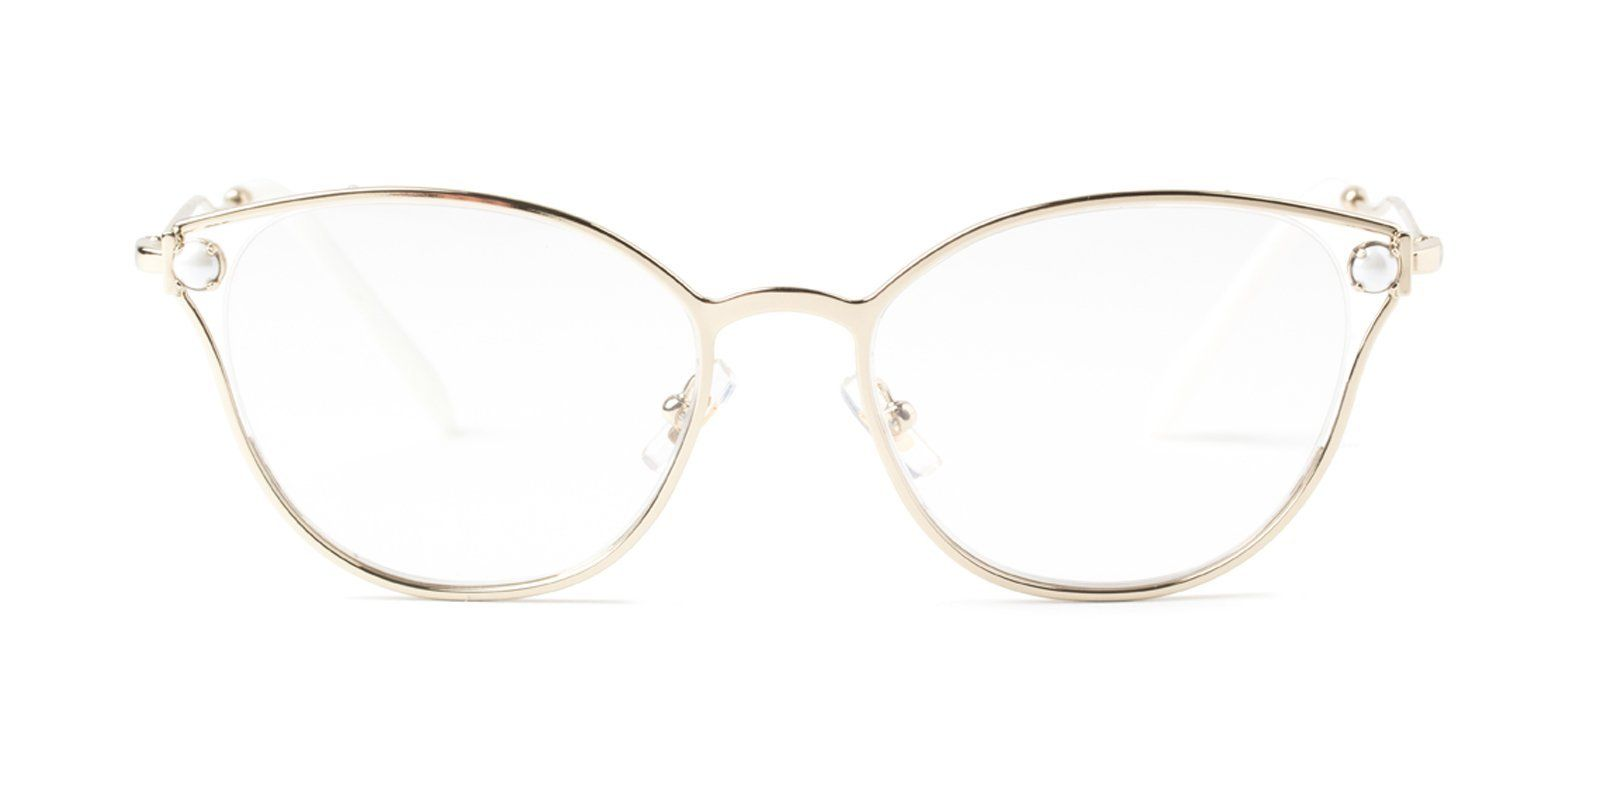 8a1092f6e68 Miu Miu - MU53QV Gold Eyeglasses in 2019